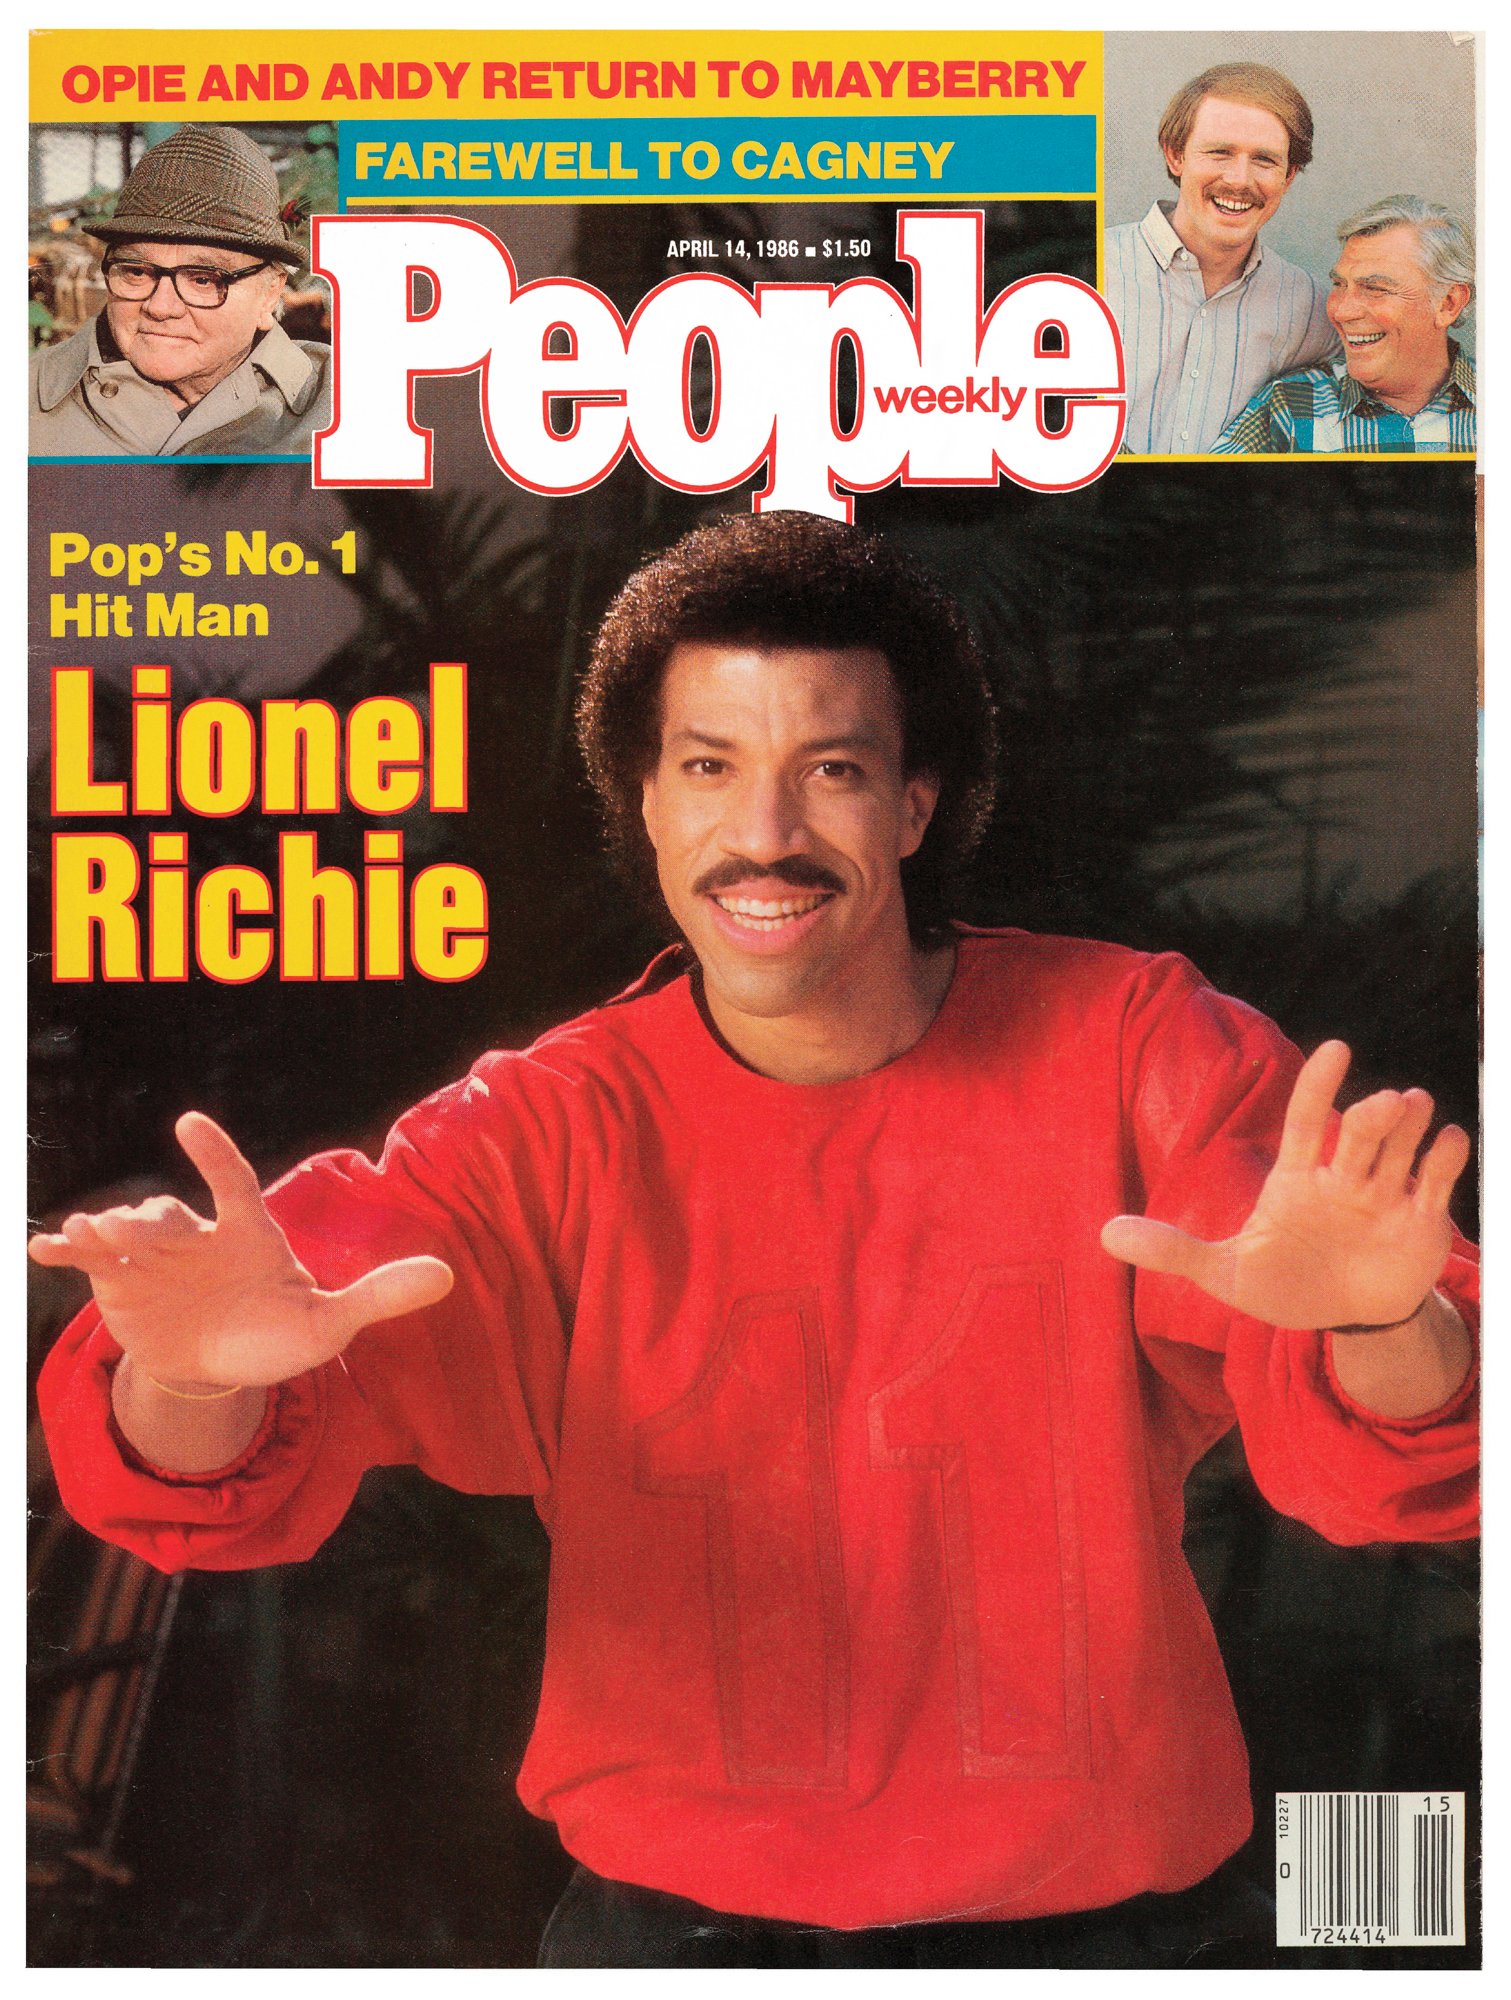 Lionel Richie 1986 people cover